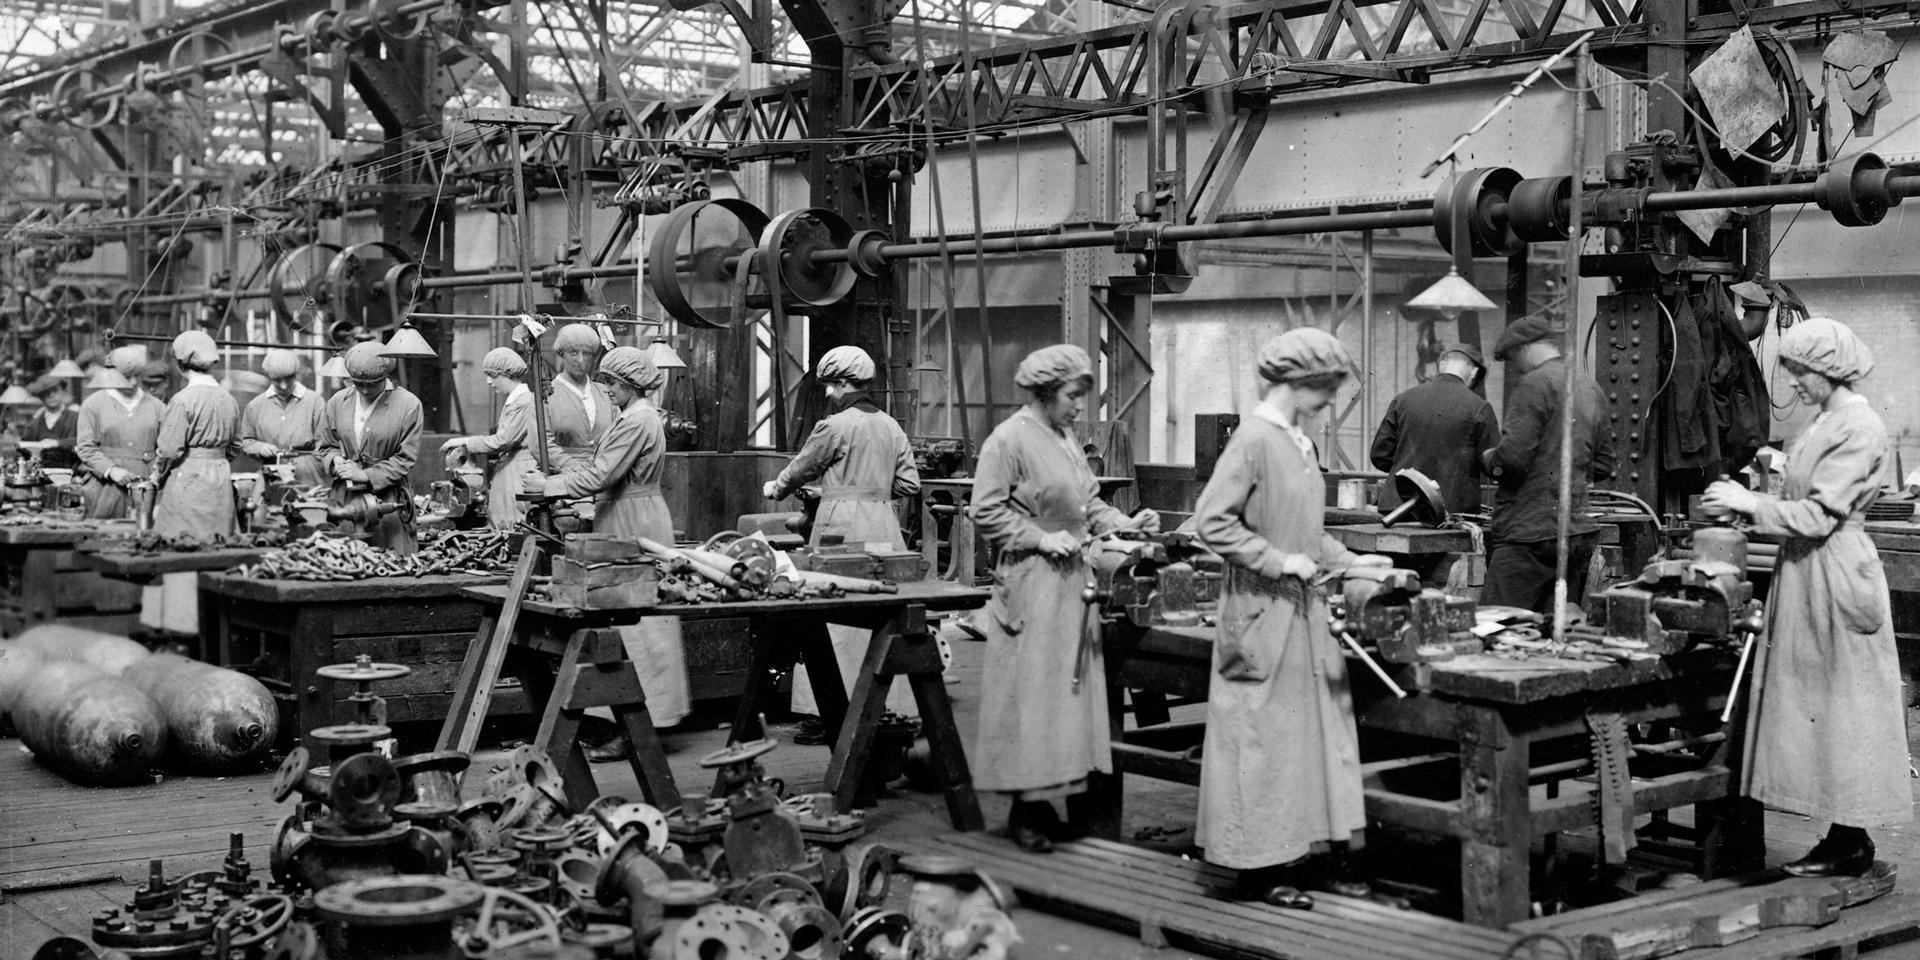 Female munitions workers, c1916